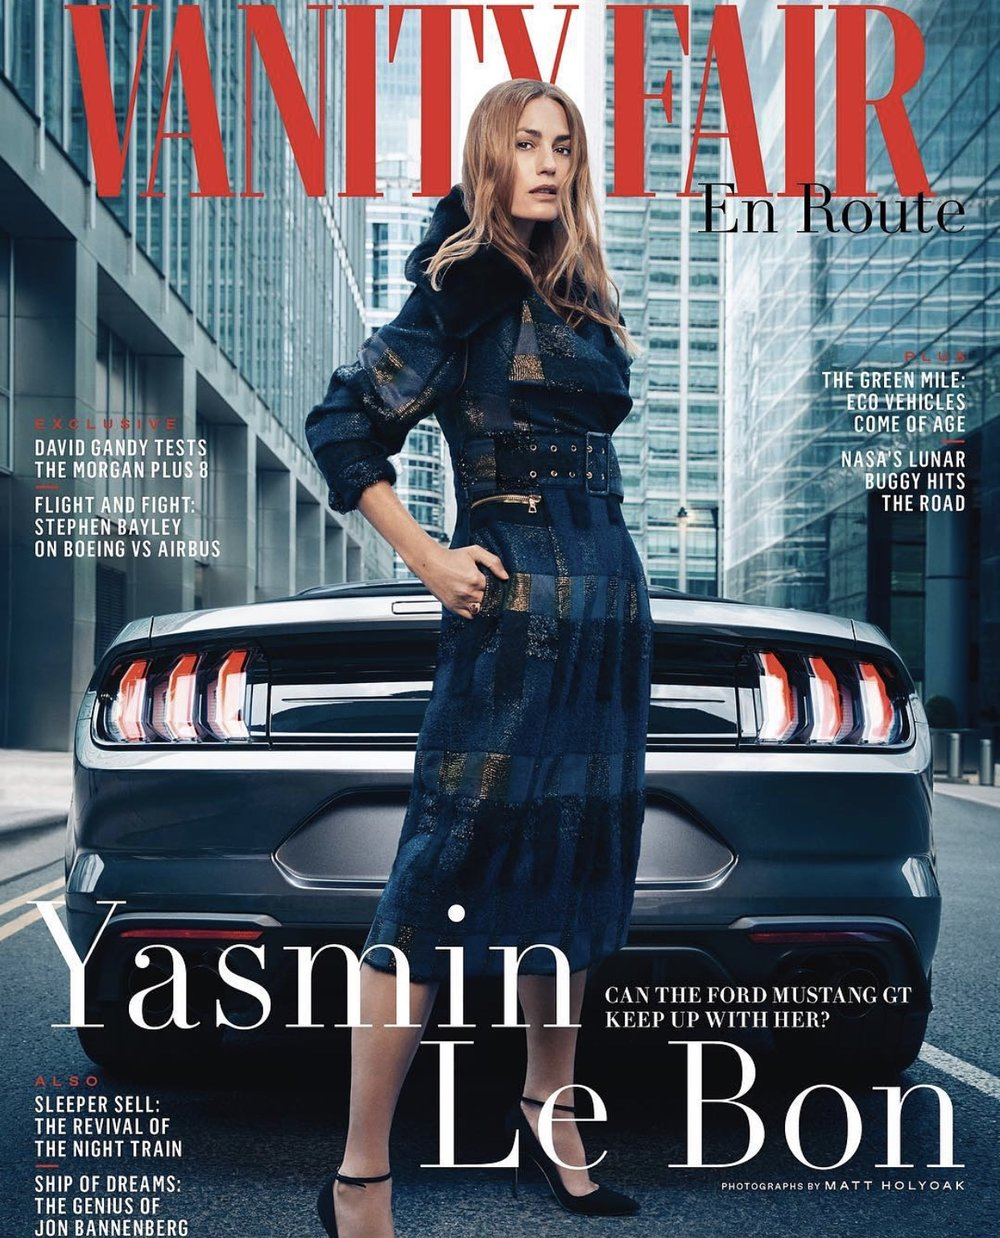 Yasmin Le Bon for Vanity Fair (En Route)